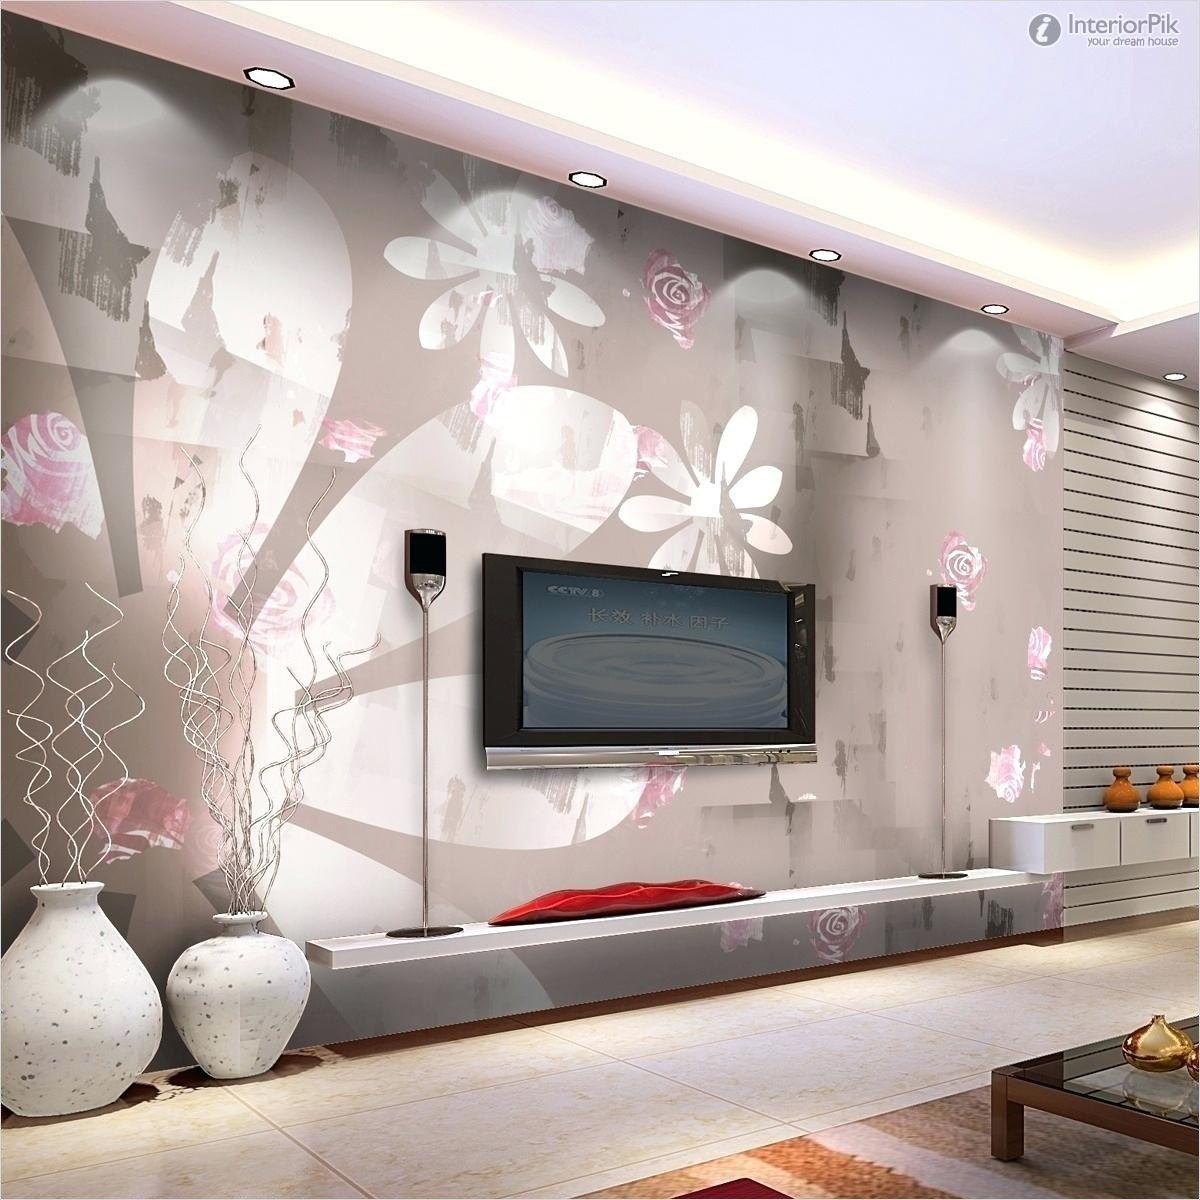 creative ideas wall decor for living room interior design ideasliving walls decorating with mirrors  acmebargig also rh pinterest